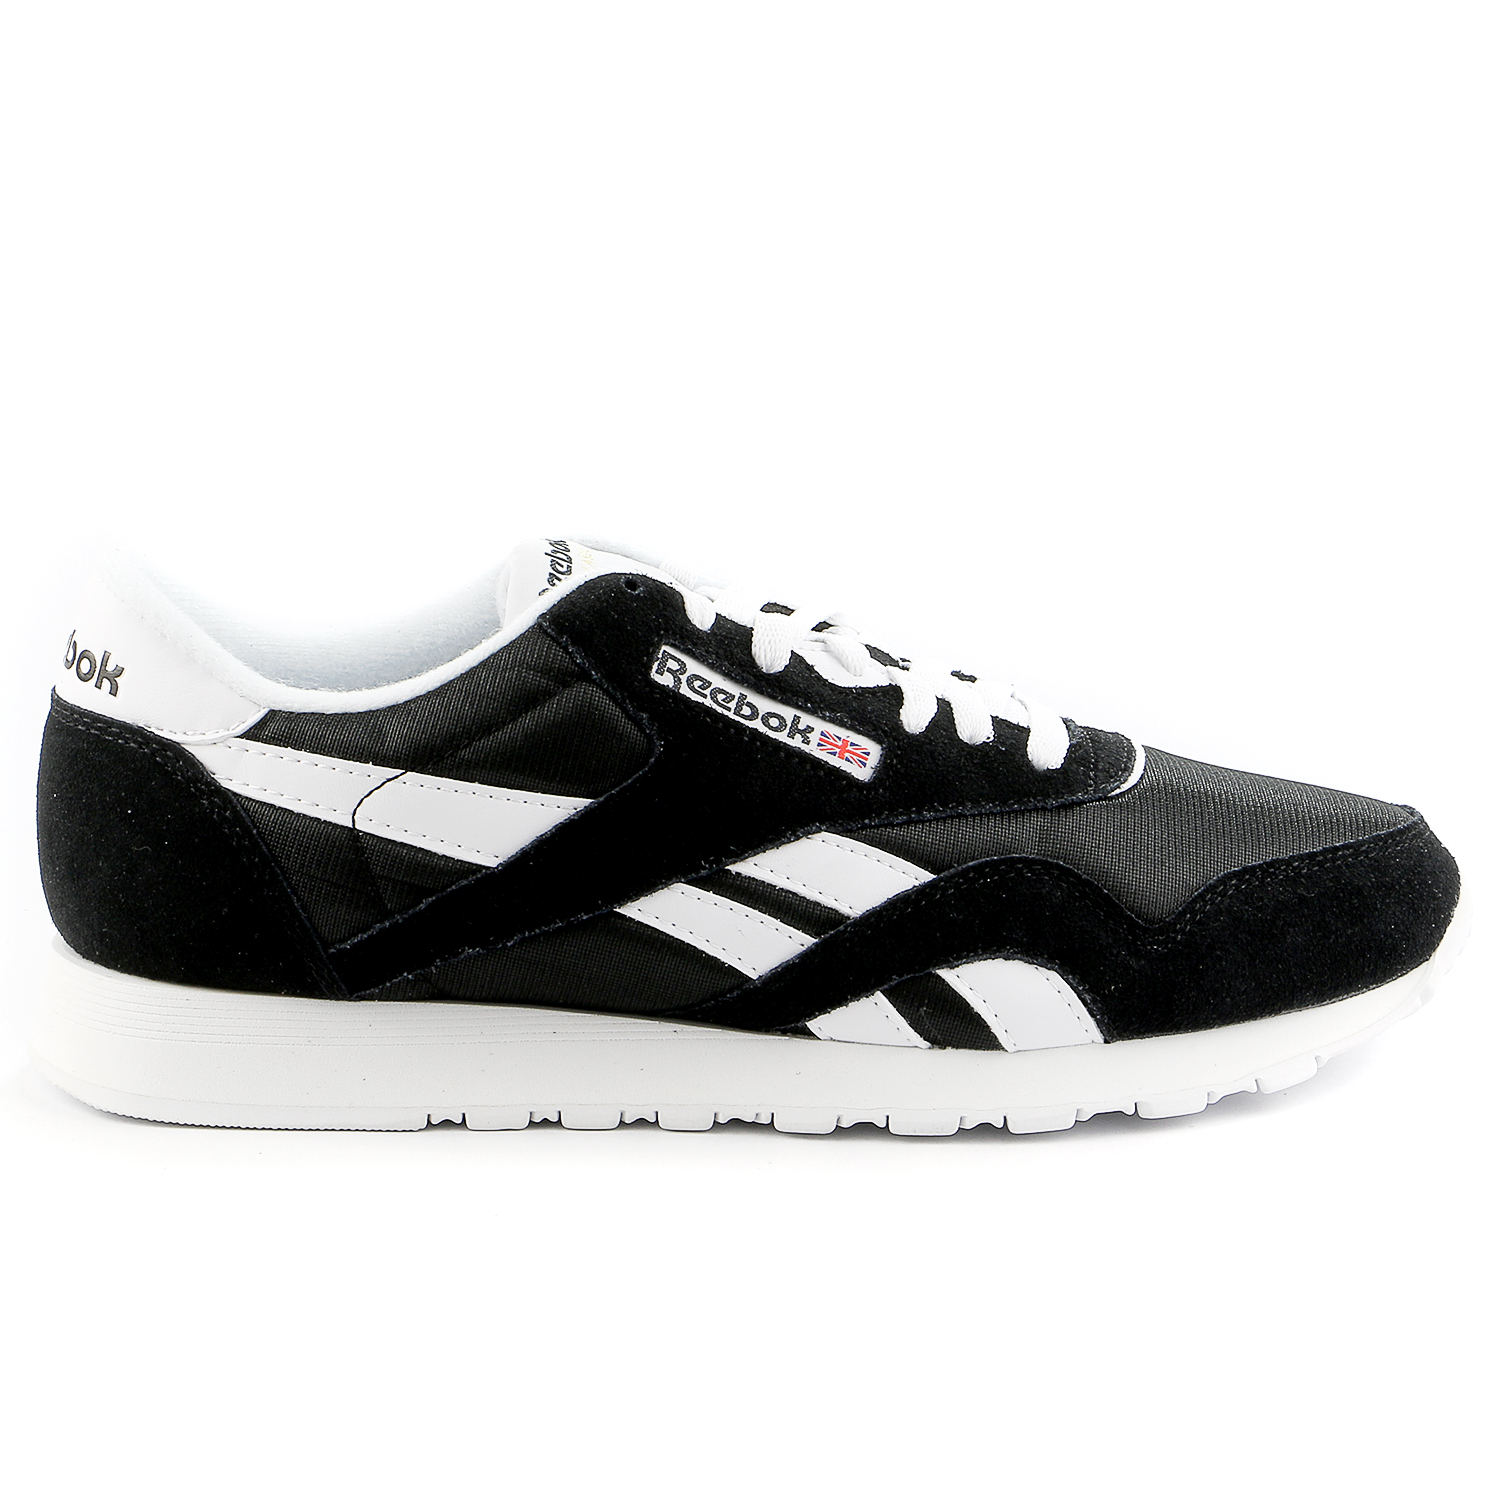 Reebok Classic Nylon Running Shoe Black White Mens by Reebok